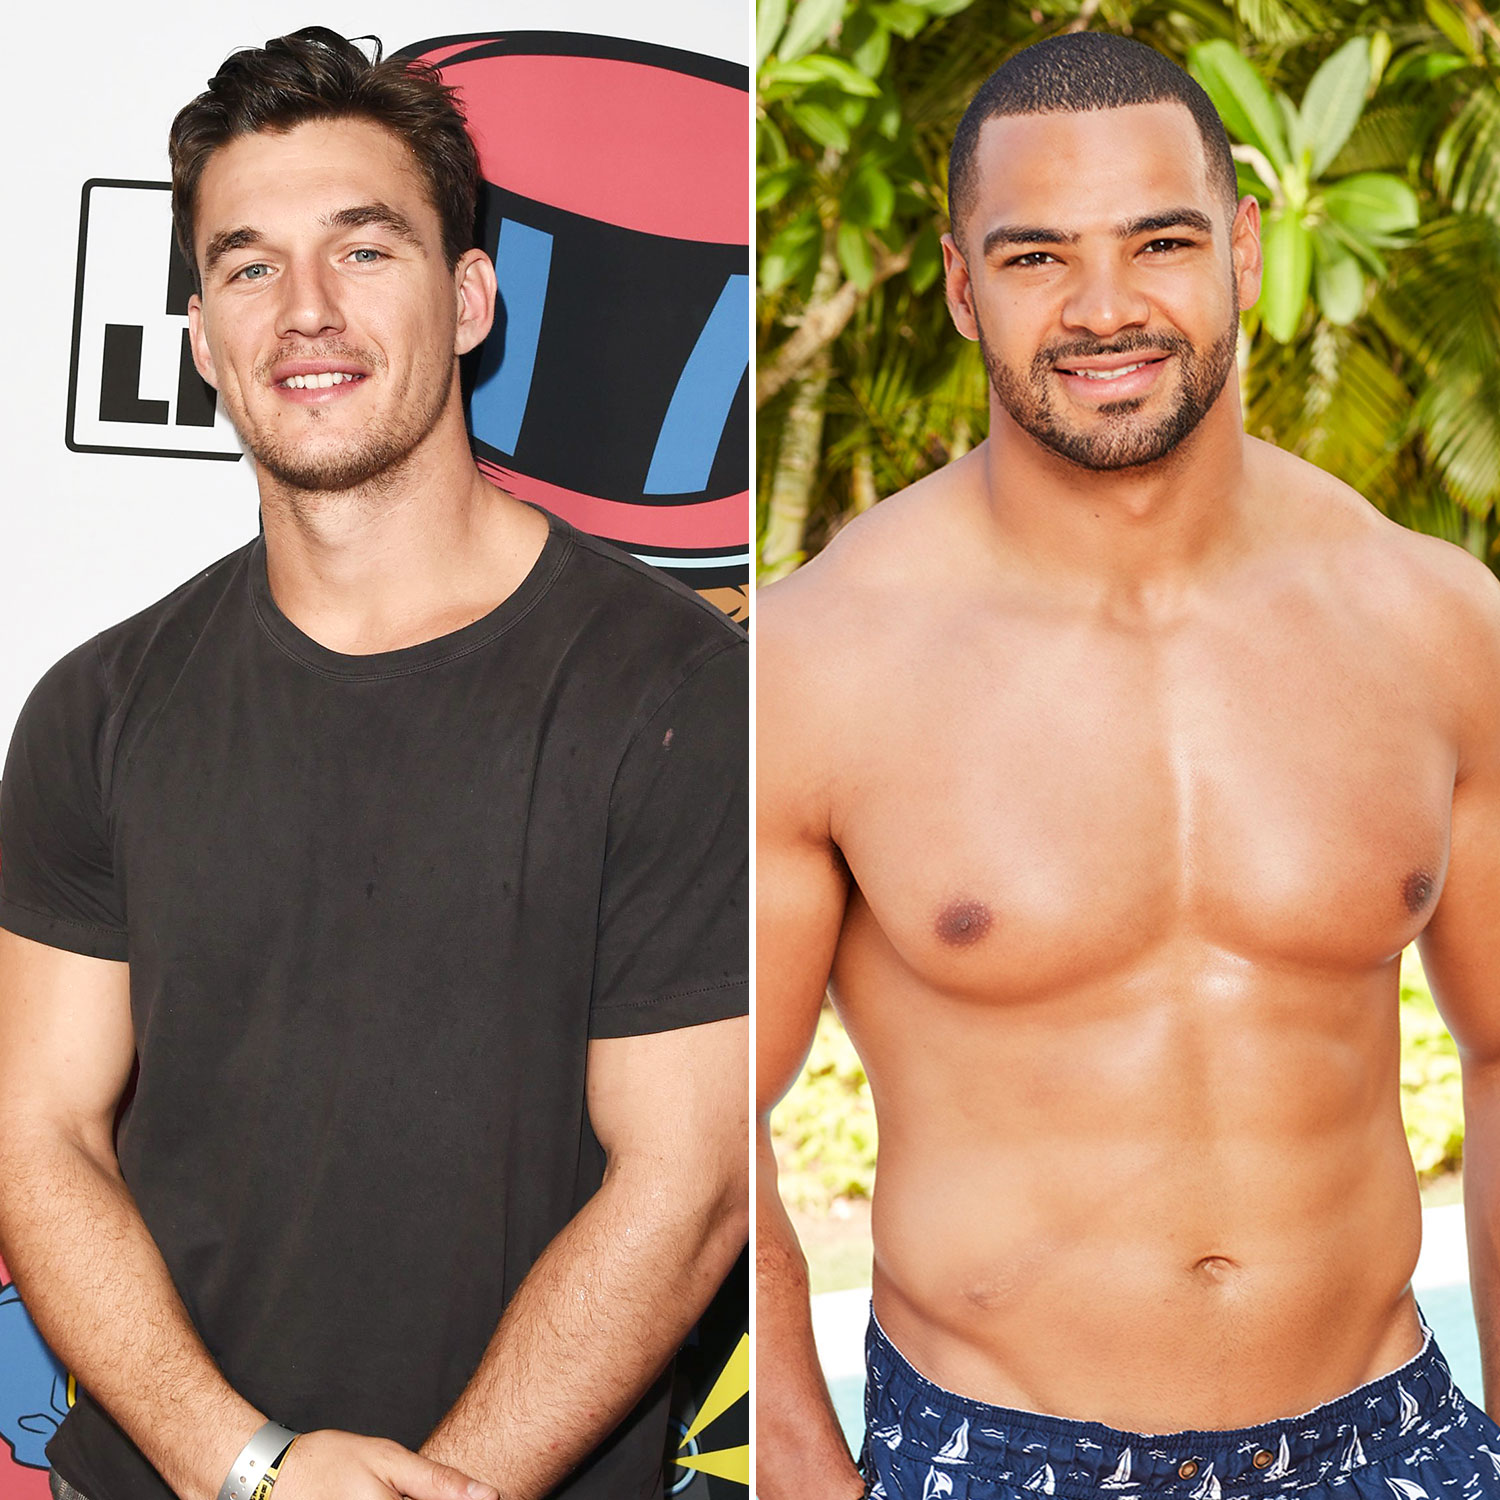 Bachelor Nation Tyler Cameron and Clay Harbor Playfully Shade Each Other About Their Workout Routines Instagram Comments